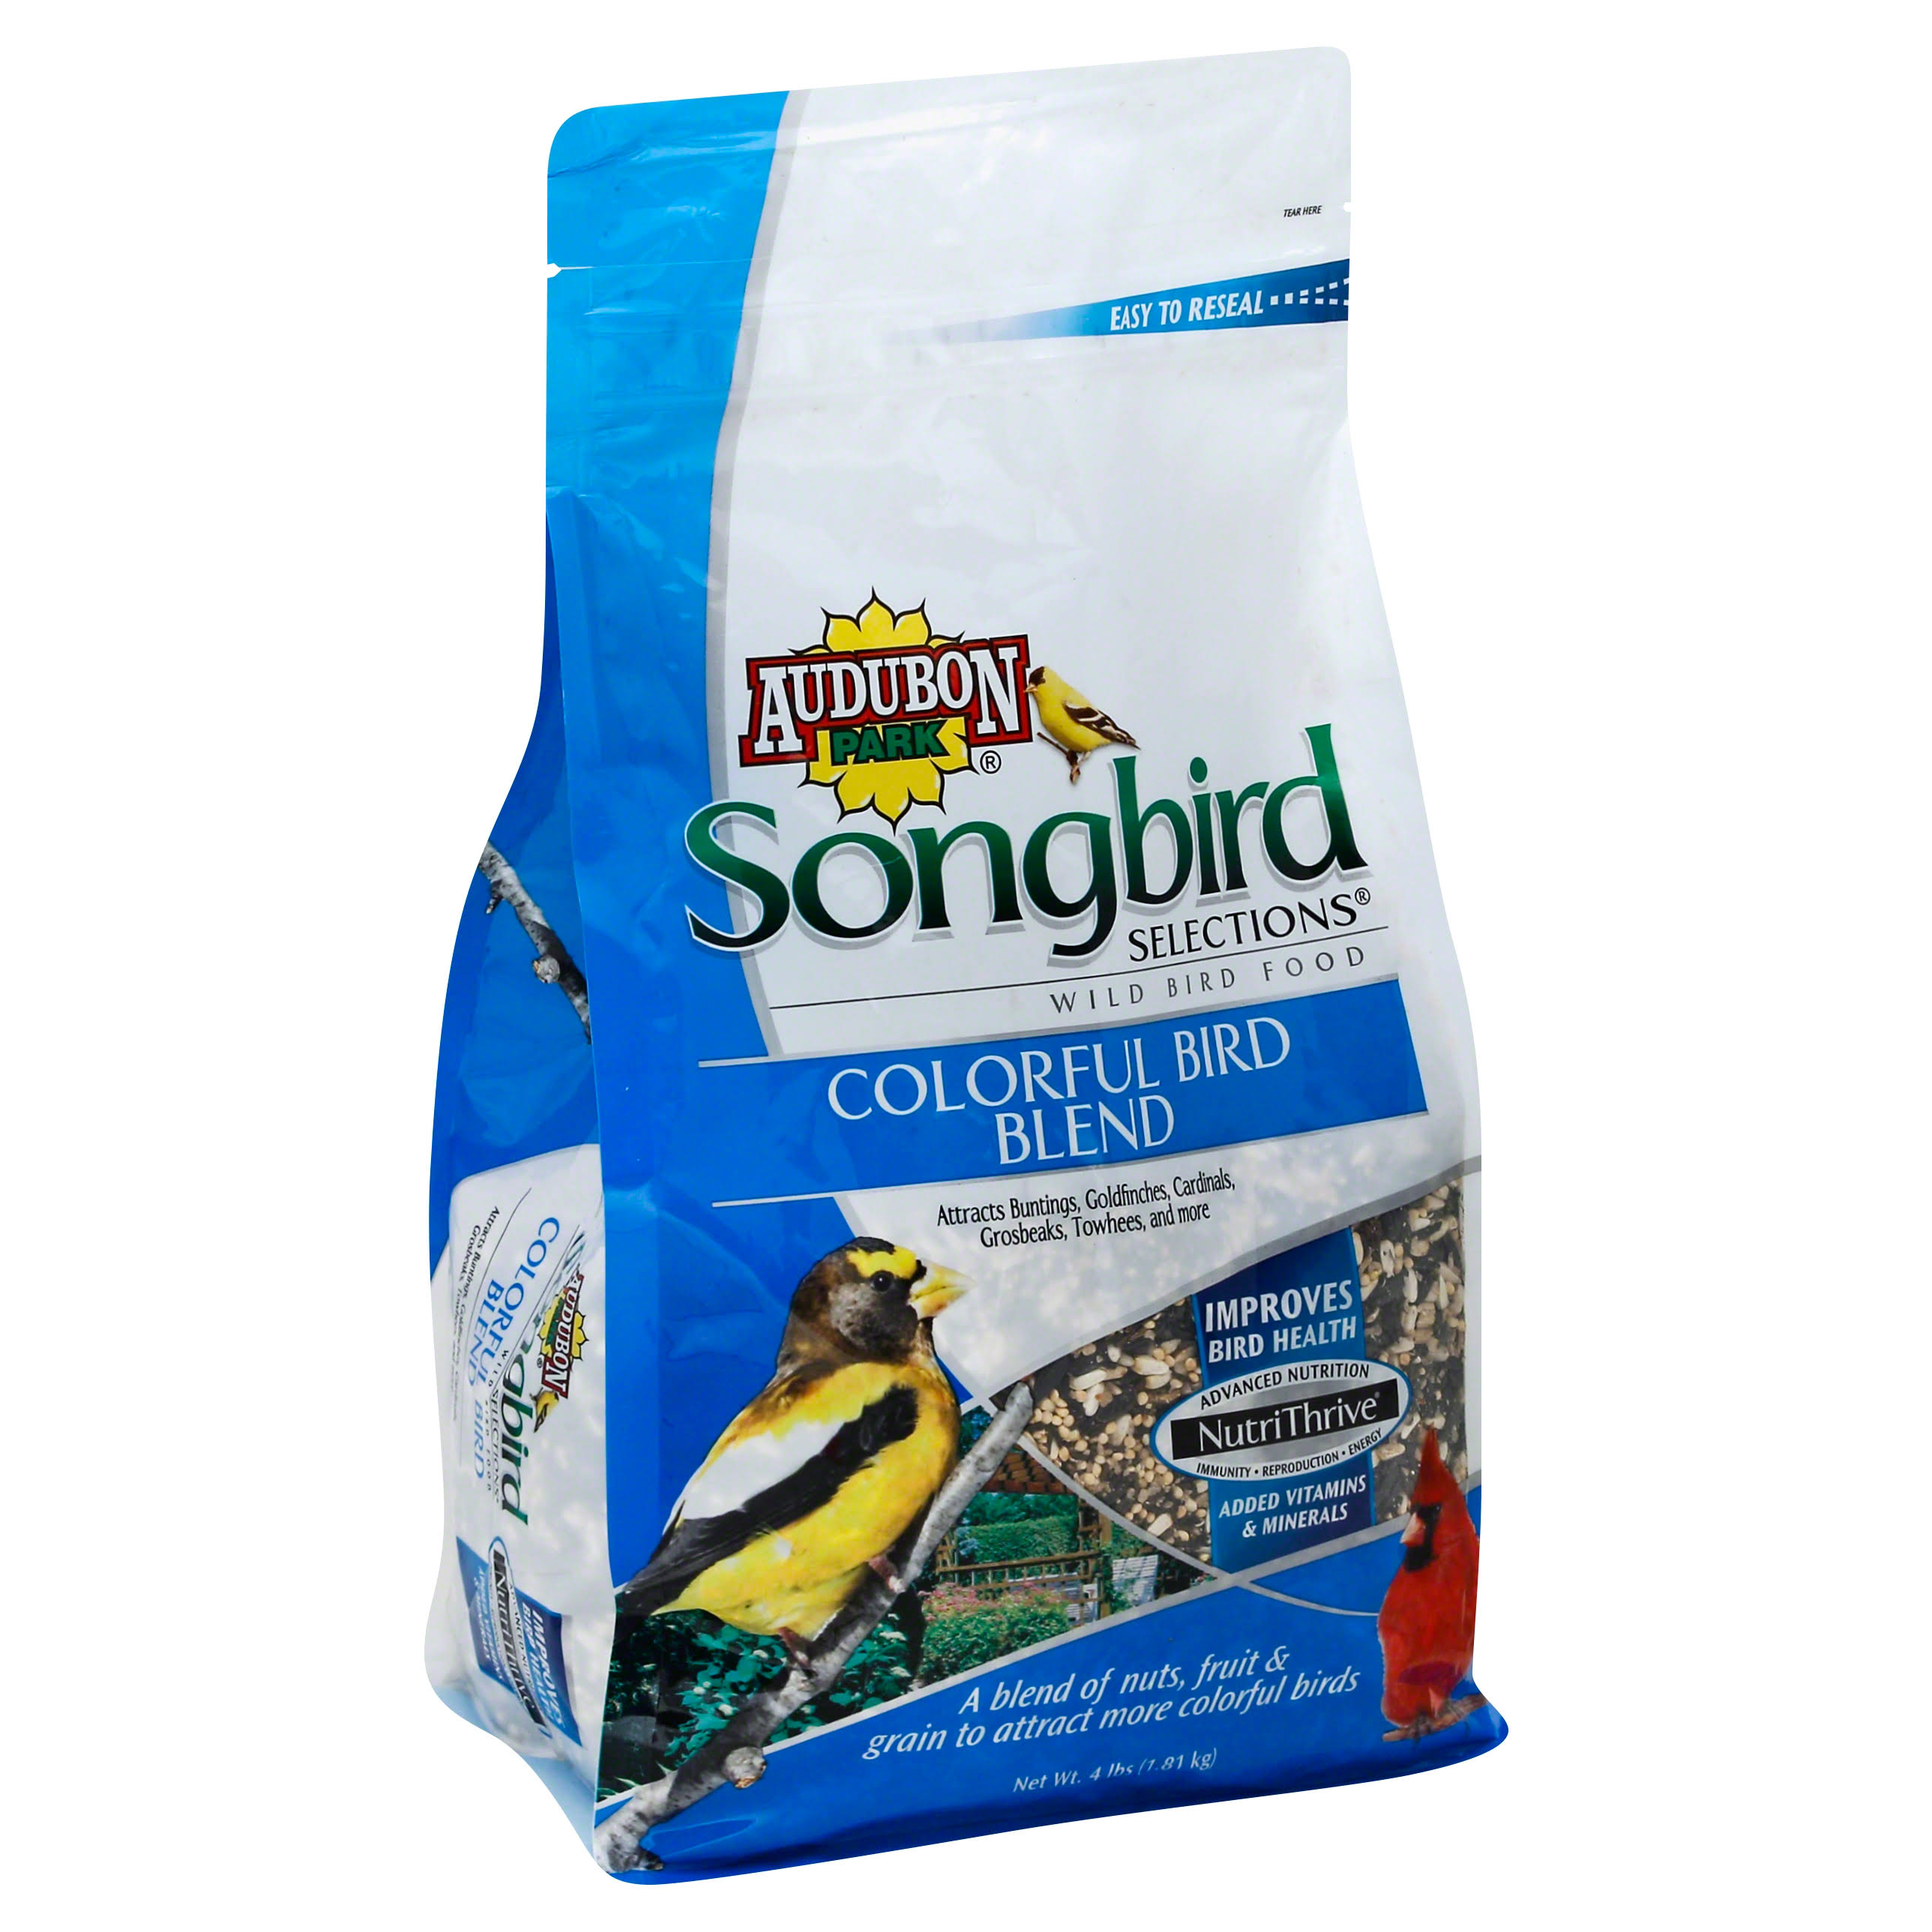 Scotts Songbird Colorful Blend Bird Seed 1025103 - 4lb